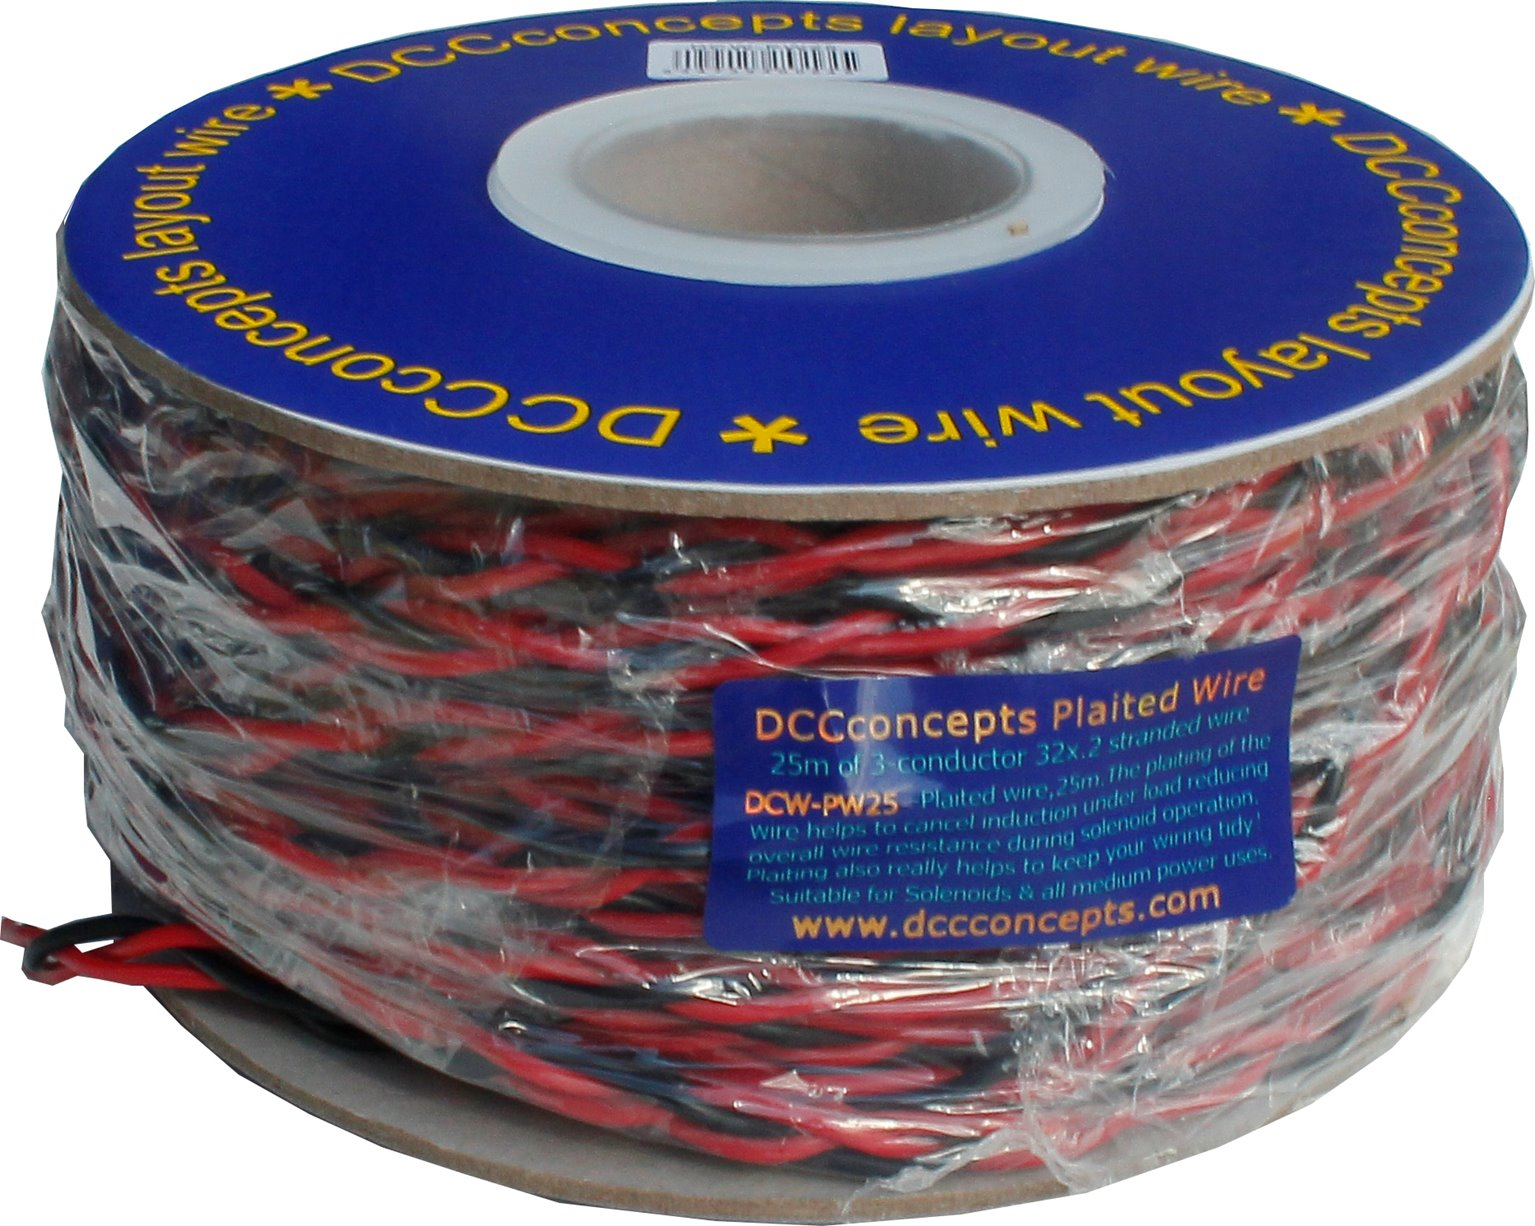 Solenoid Connection Wire 3-Plait Red/Black/Red